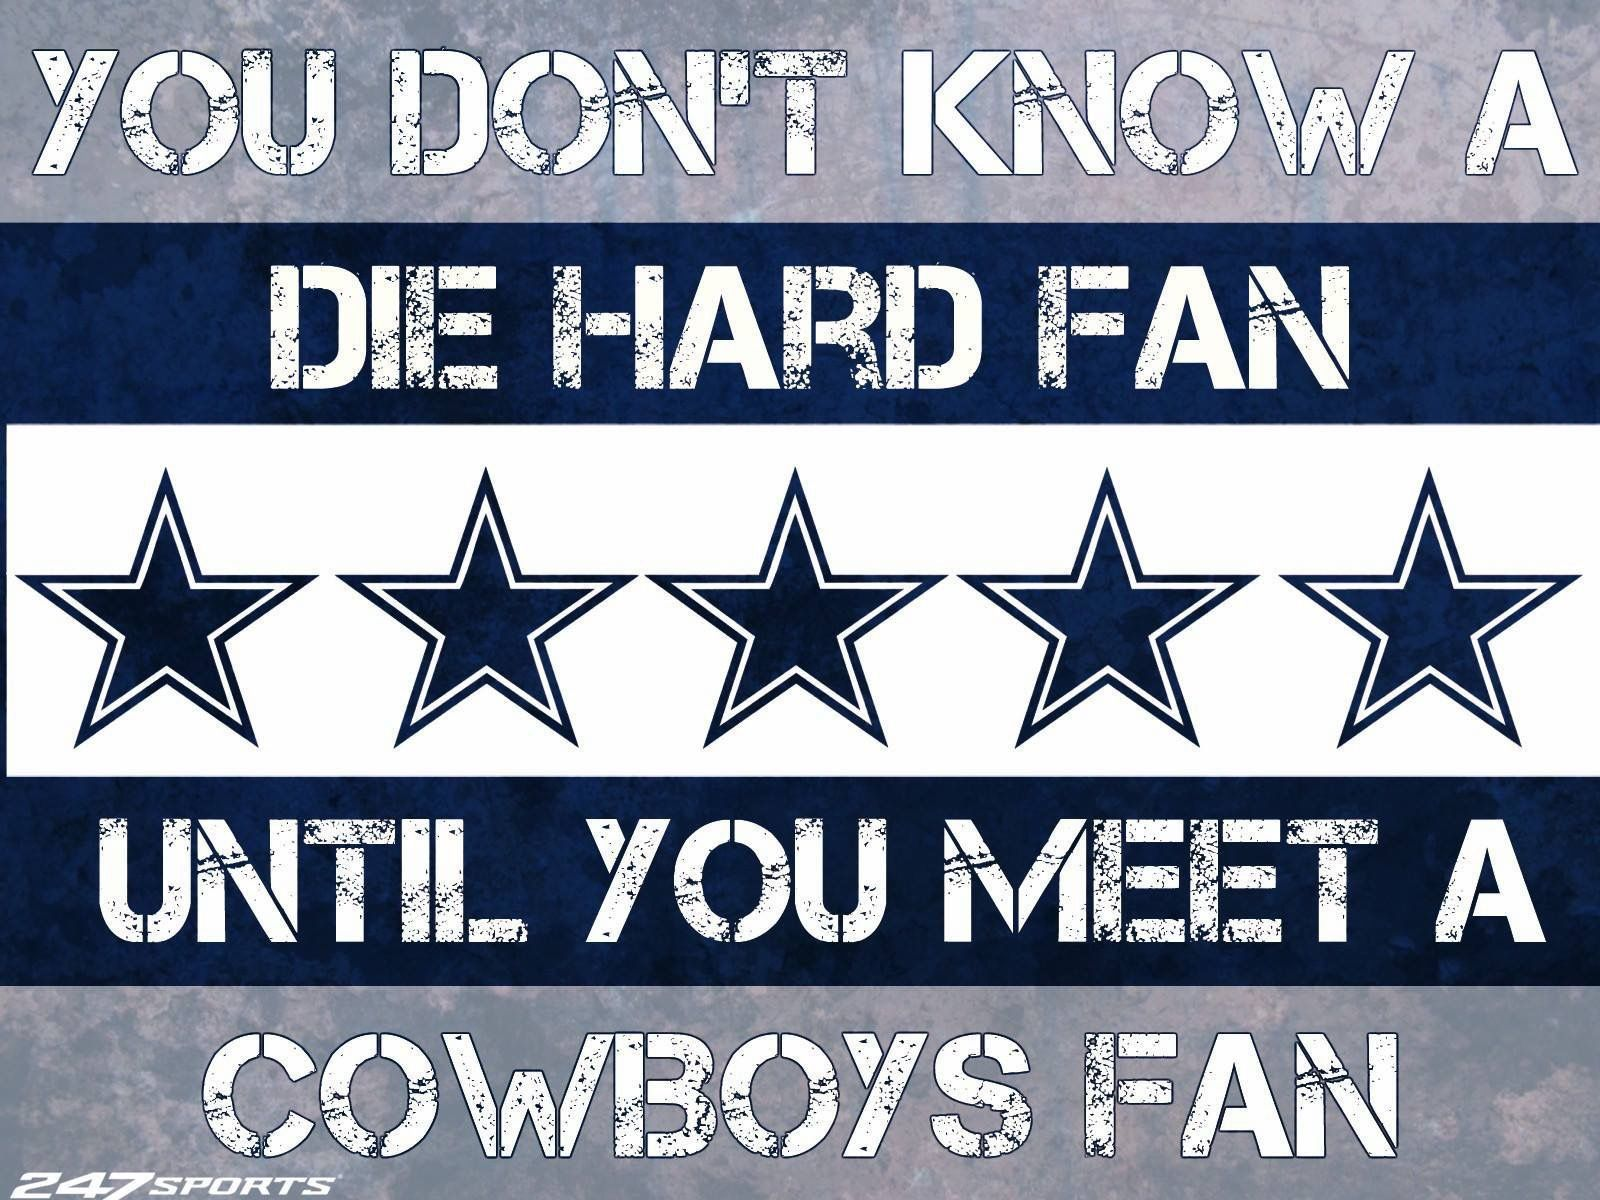 Dallas Cowboys Quotes Pinavakailaxj On Dallas Cowboys Football  Pinterest  Cowboys